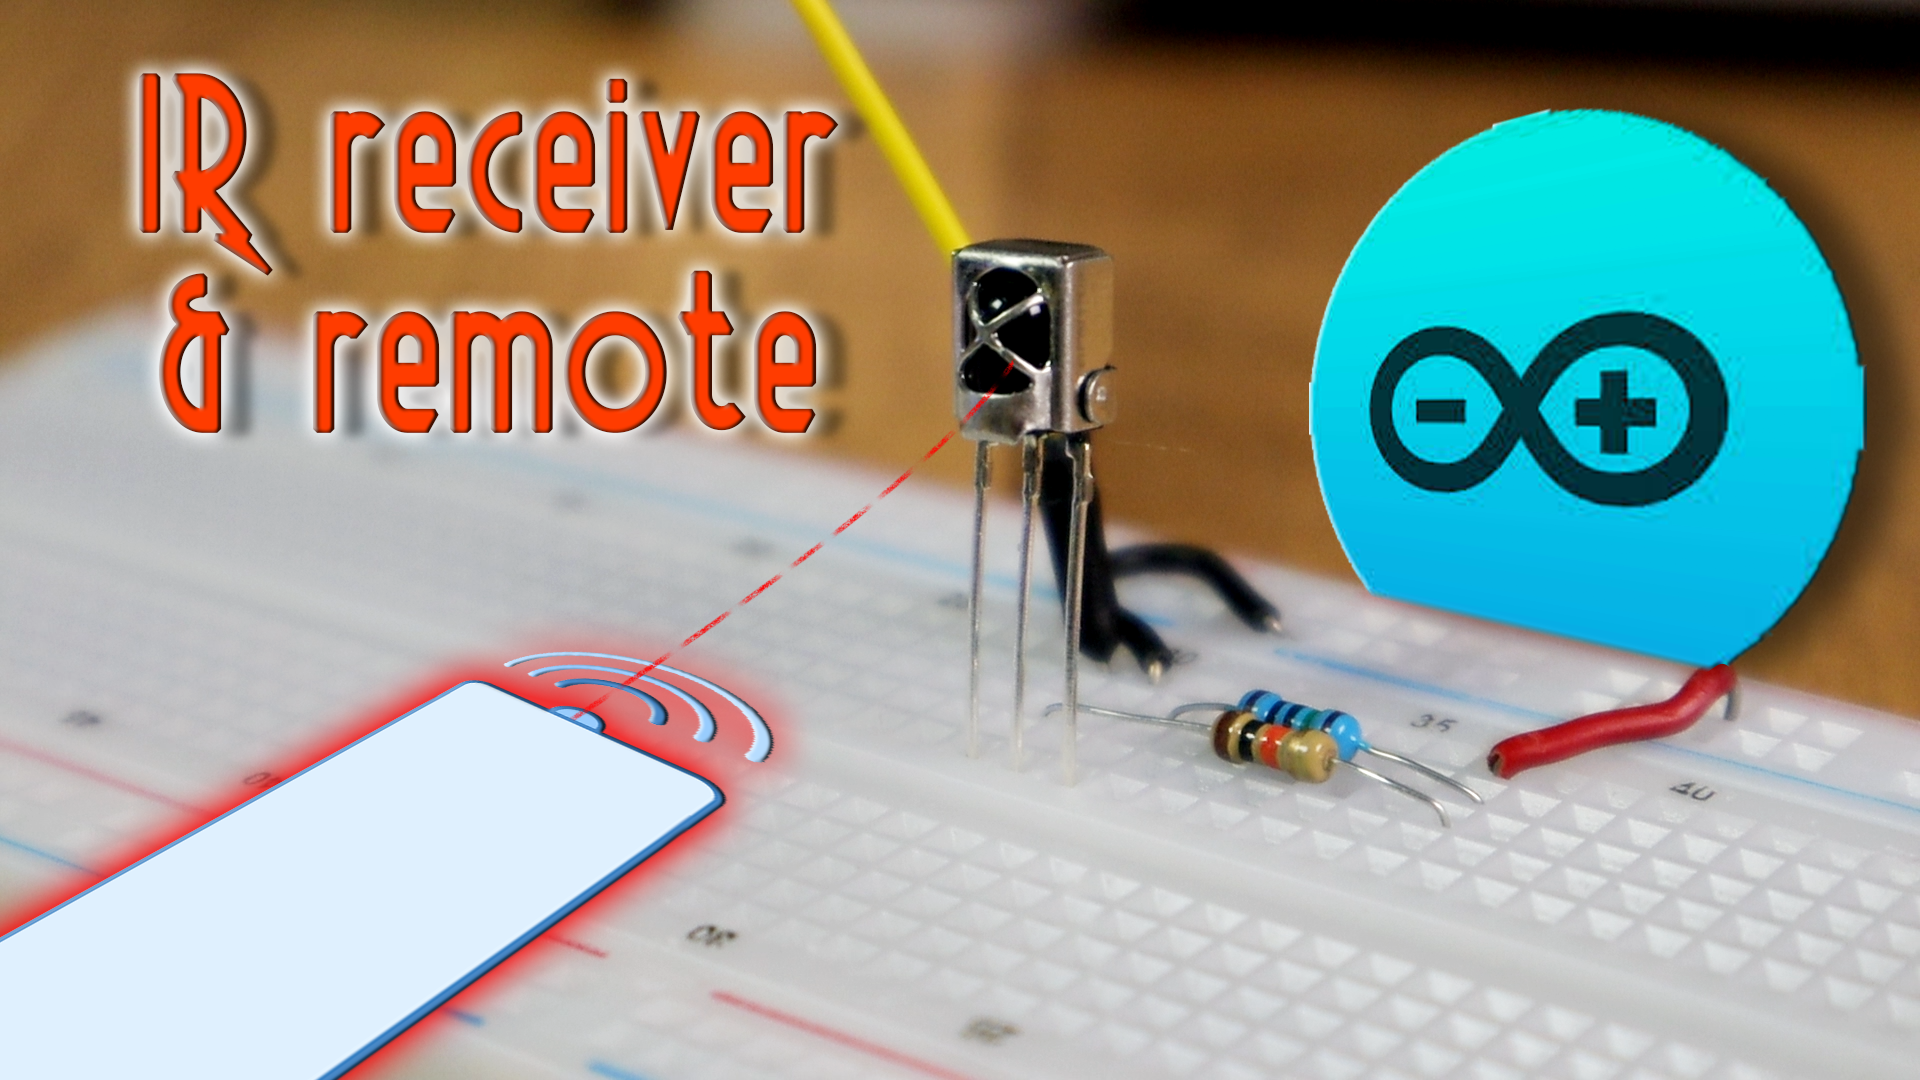 Arduino Tutorials Begginers Advanced Easy Basic Simple Circuit Using The Attiny85 Microcontroller An Rgb Led And Some Lets See How To Use Atmega328p Chip Which Is That Uno Board Uses Once We Know Bare Minimum Configuration